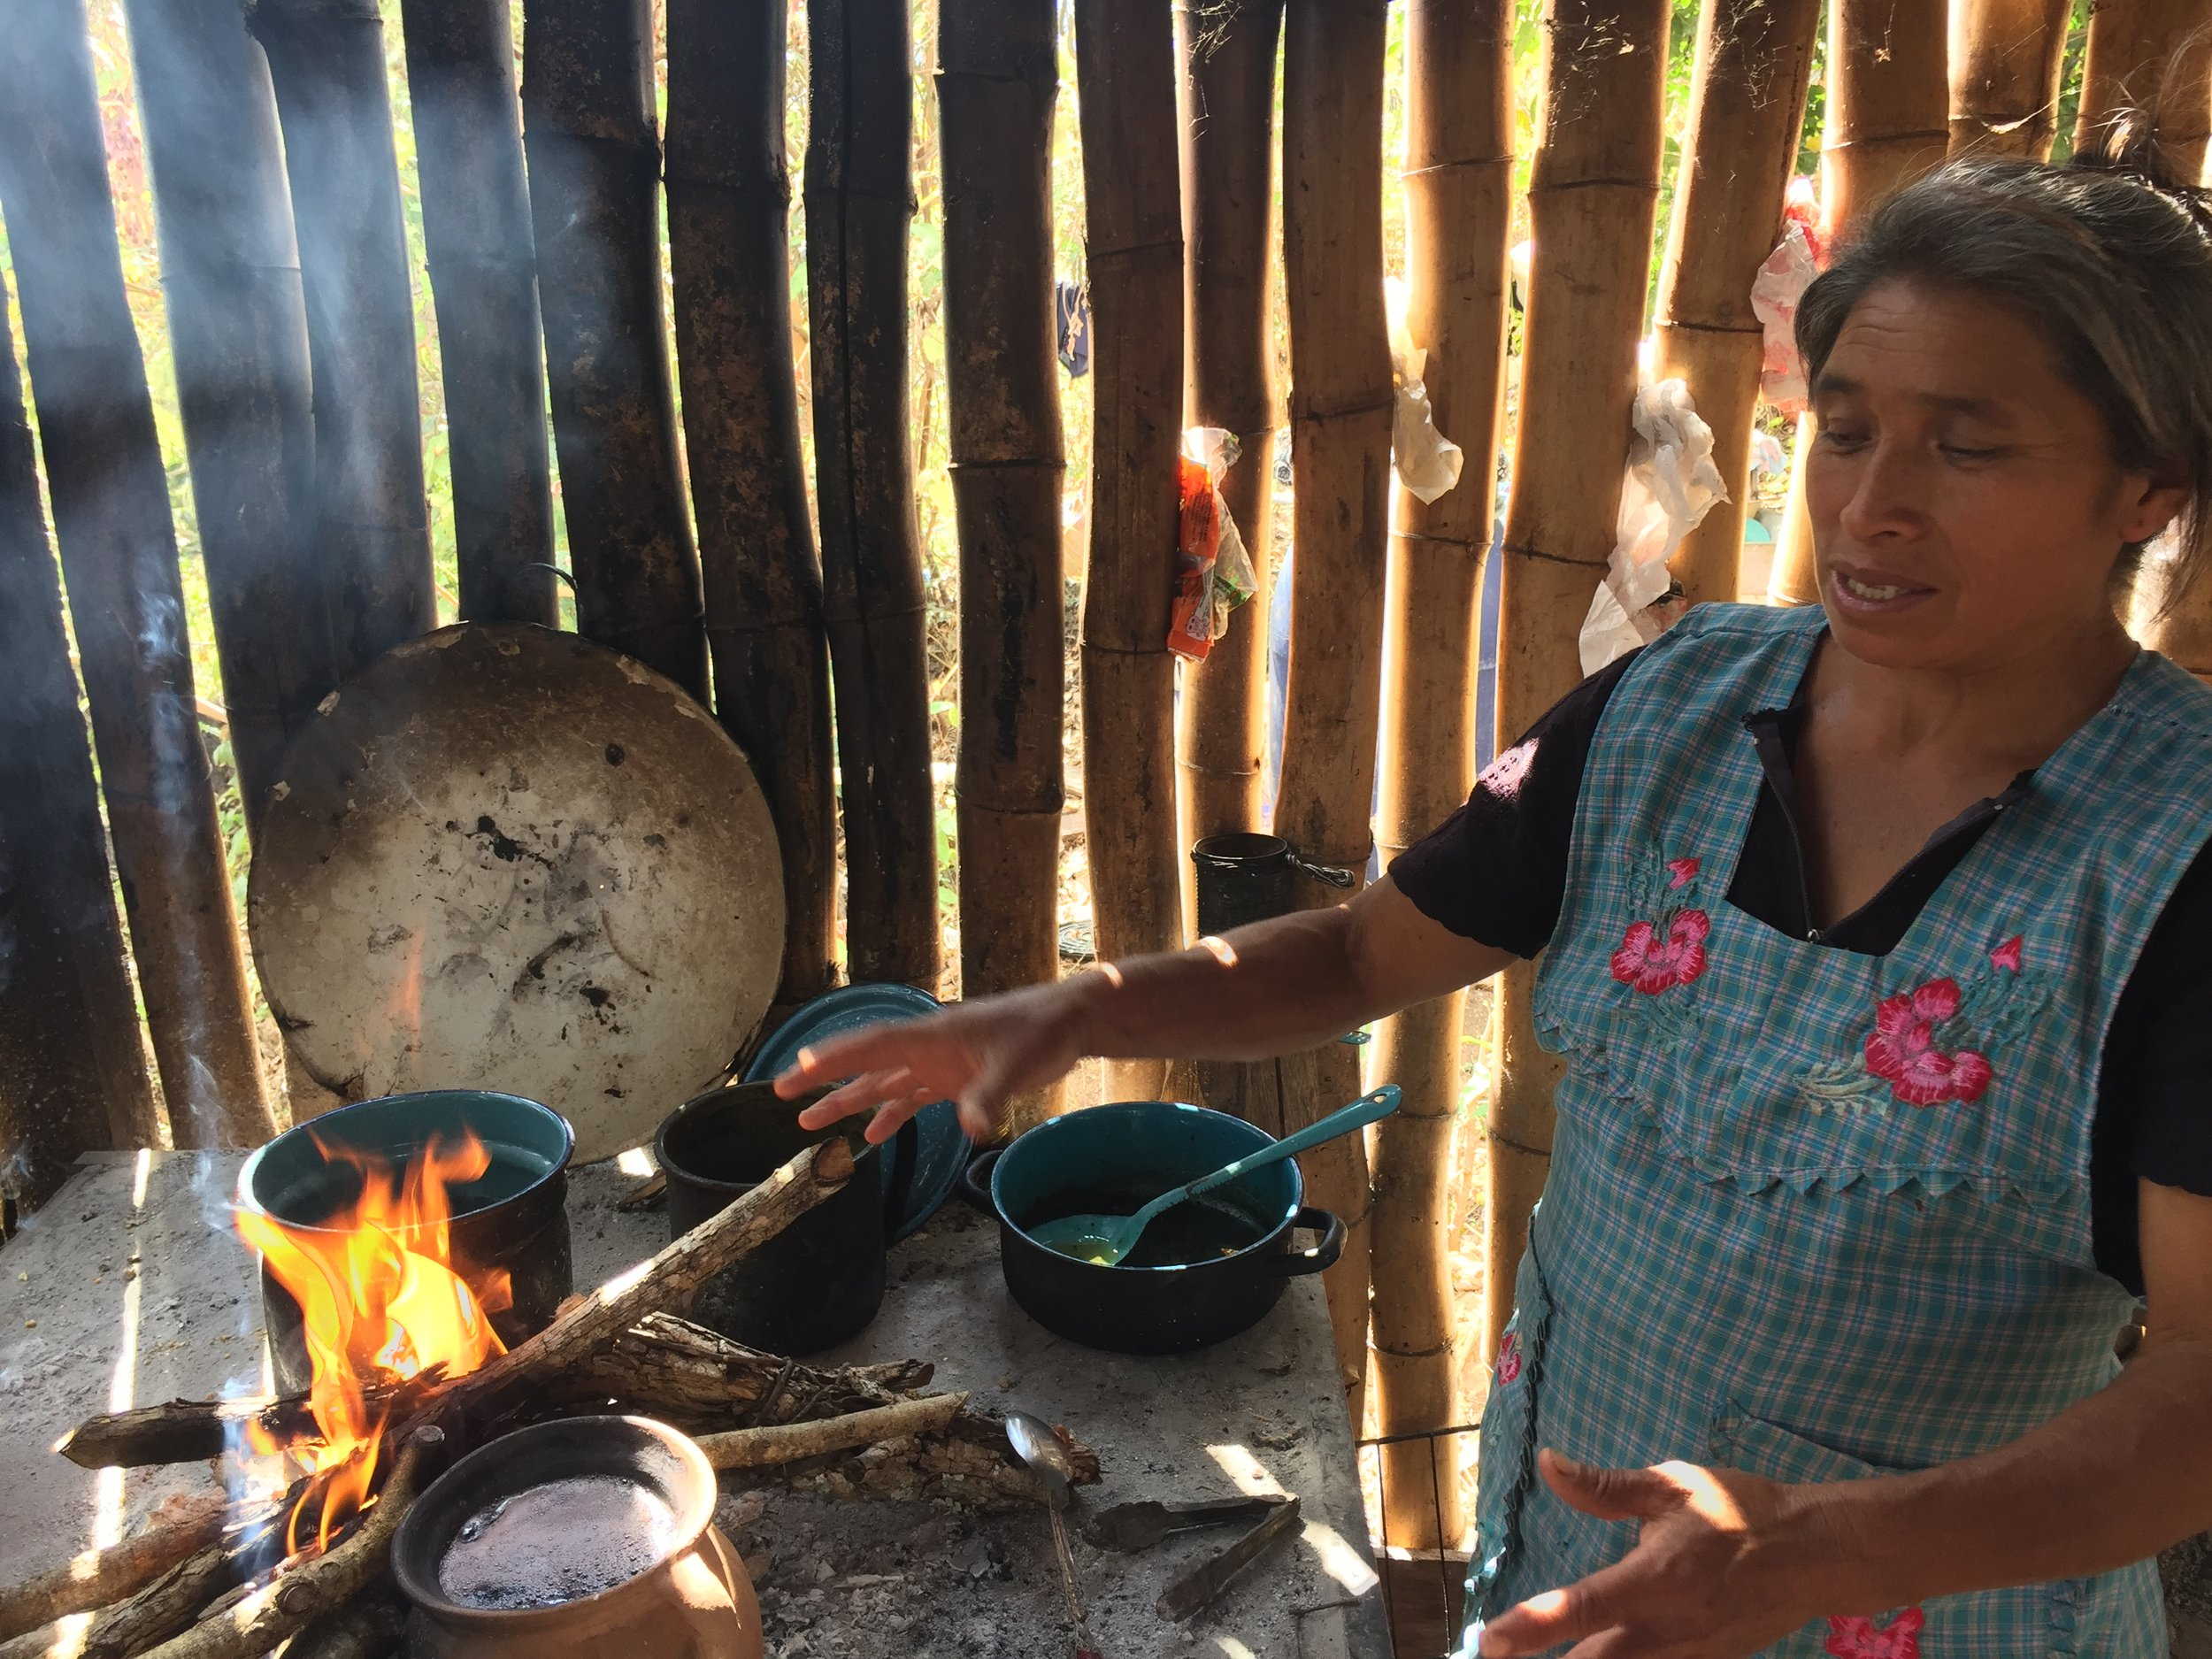 Julieta cooking beans